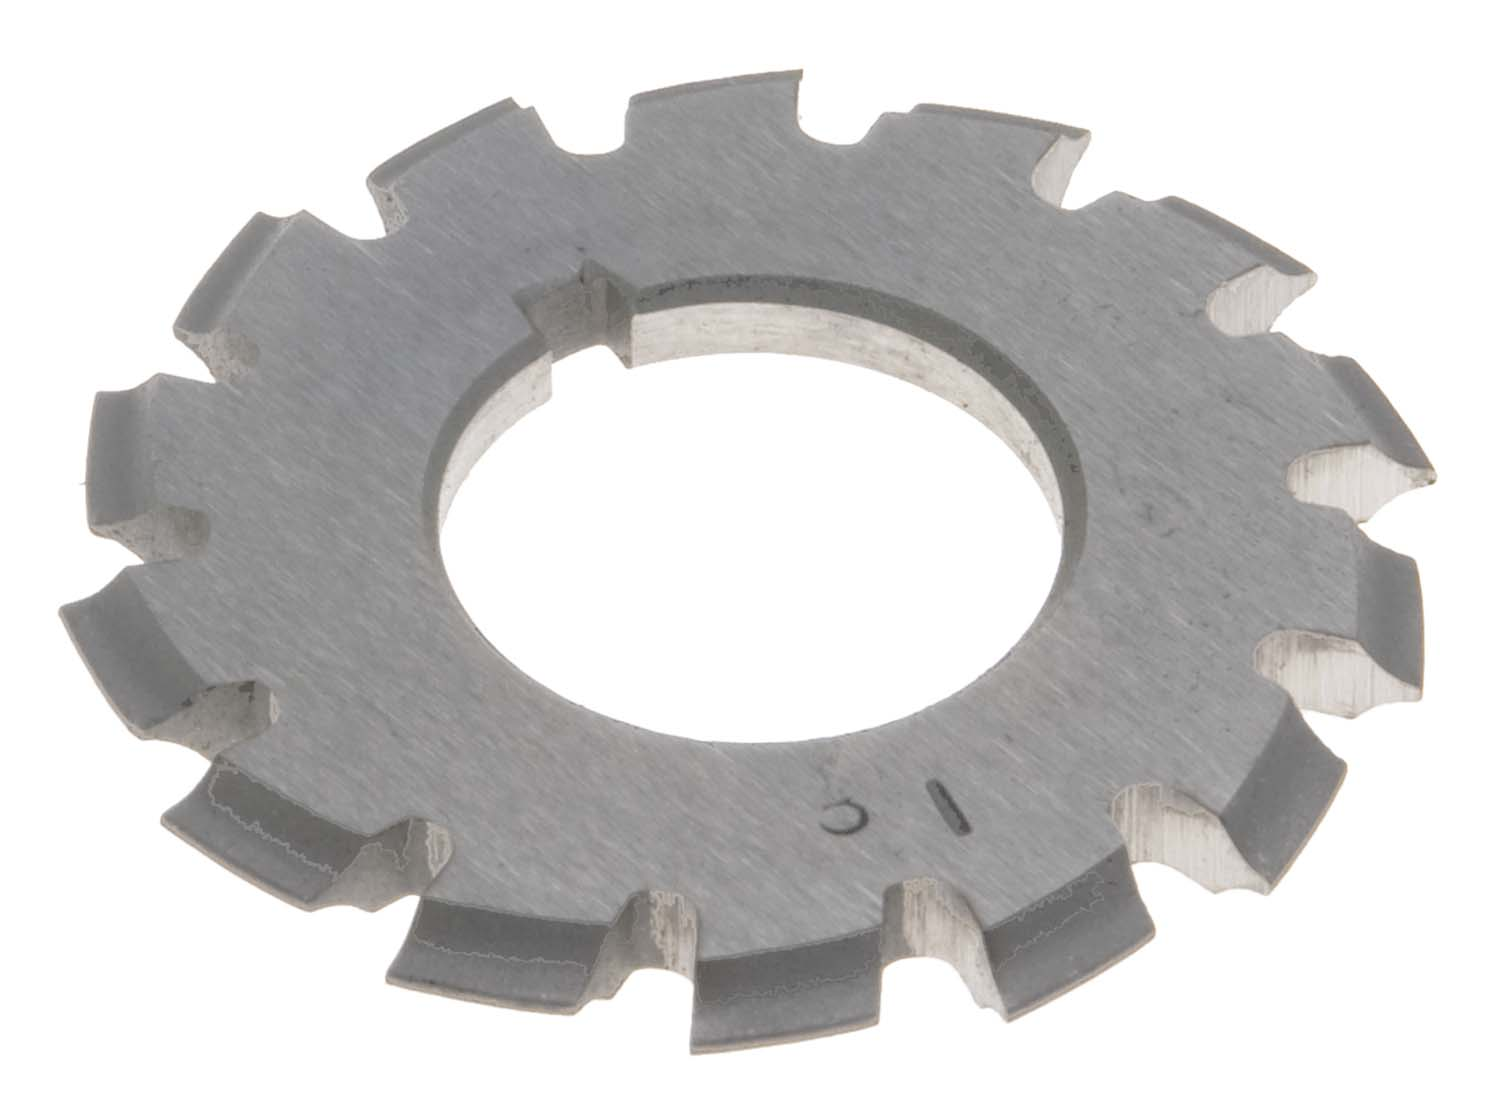 28 Diametral Pitch # 4   Involute Gear Cutter - 7/8 ID - 14-1/2 Degree Pressure Angle